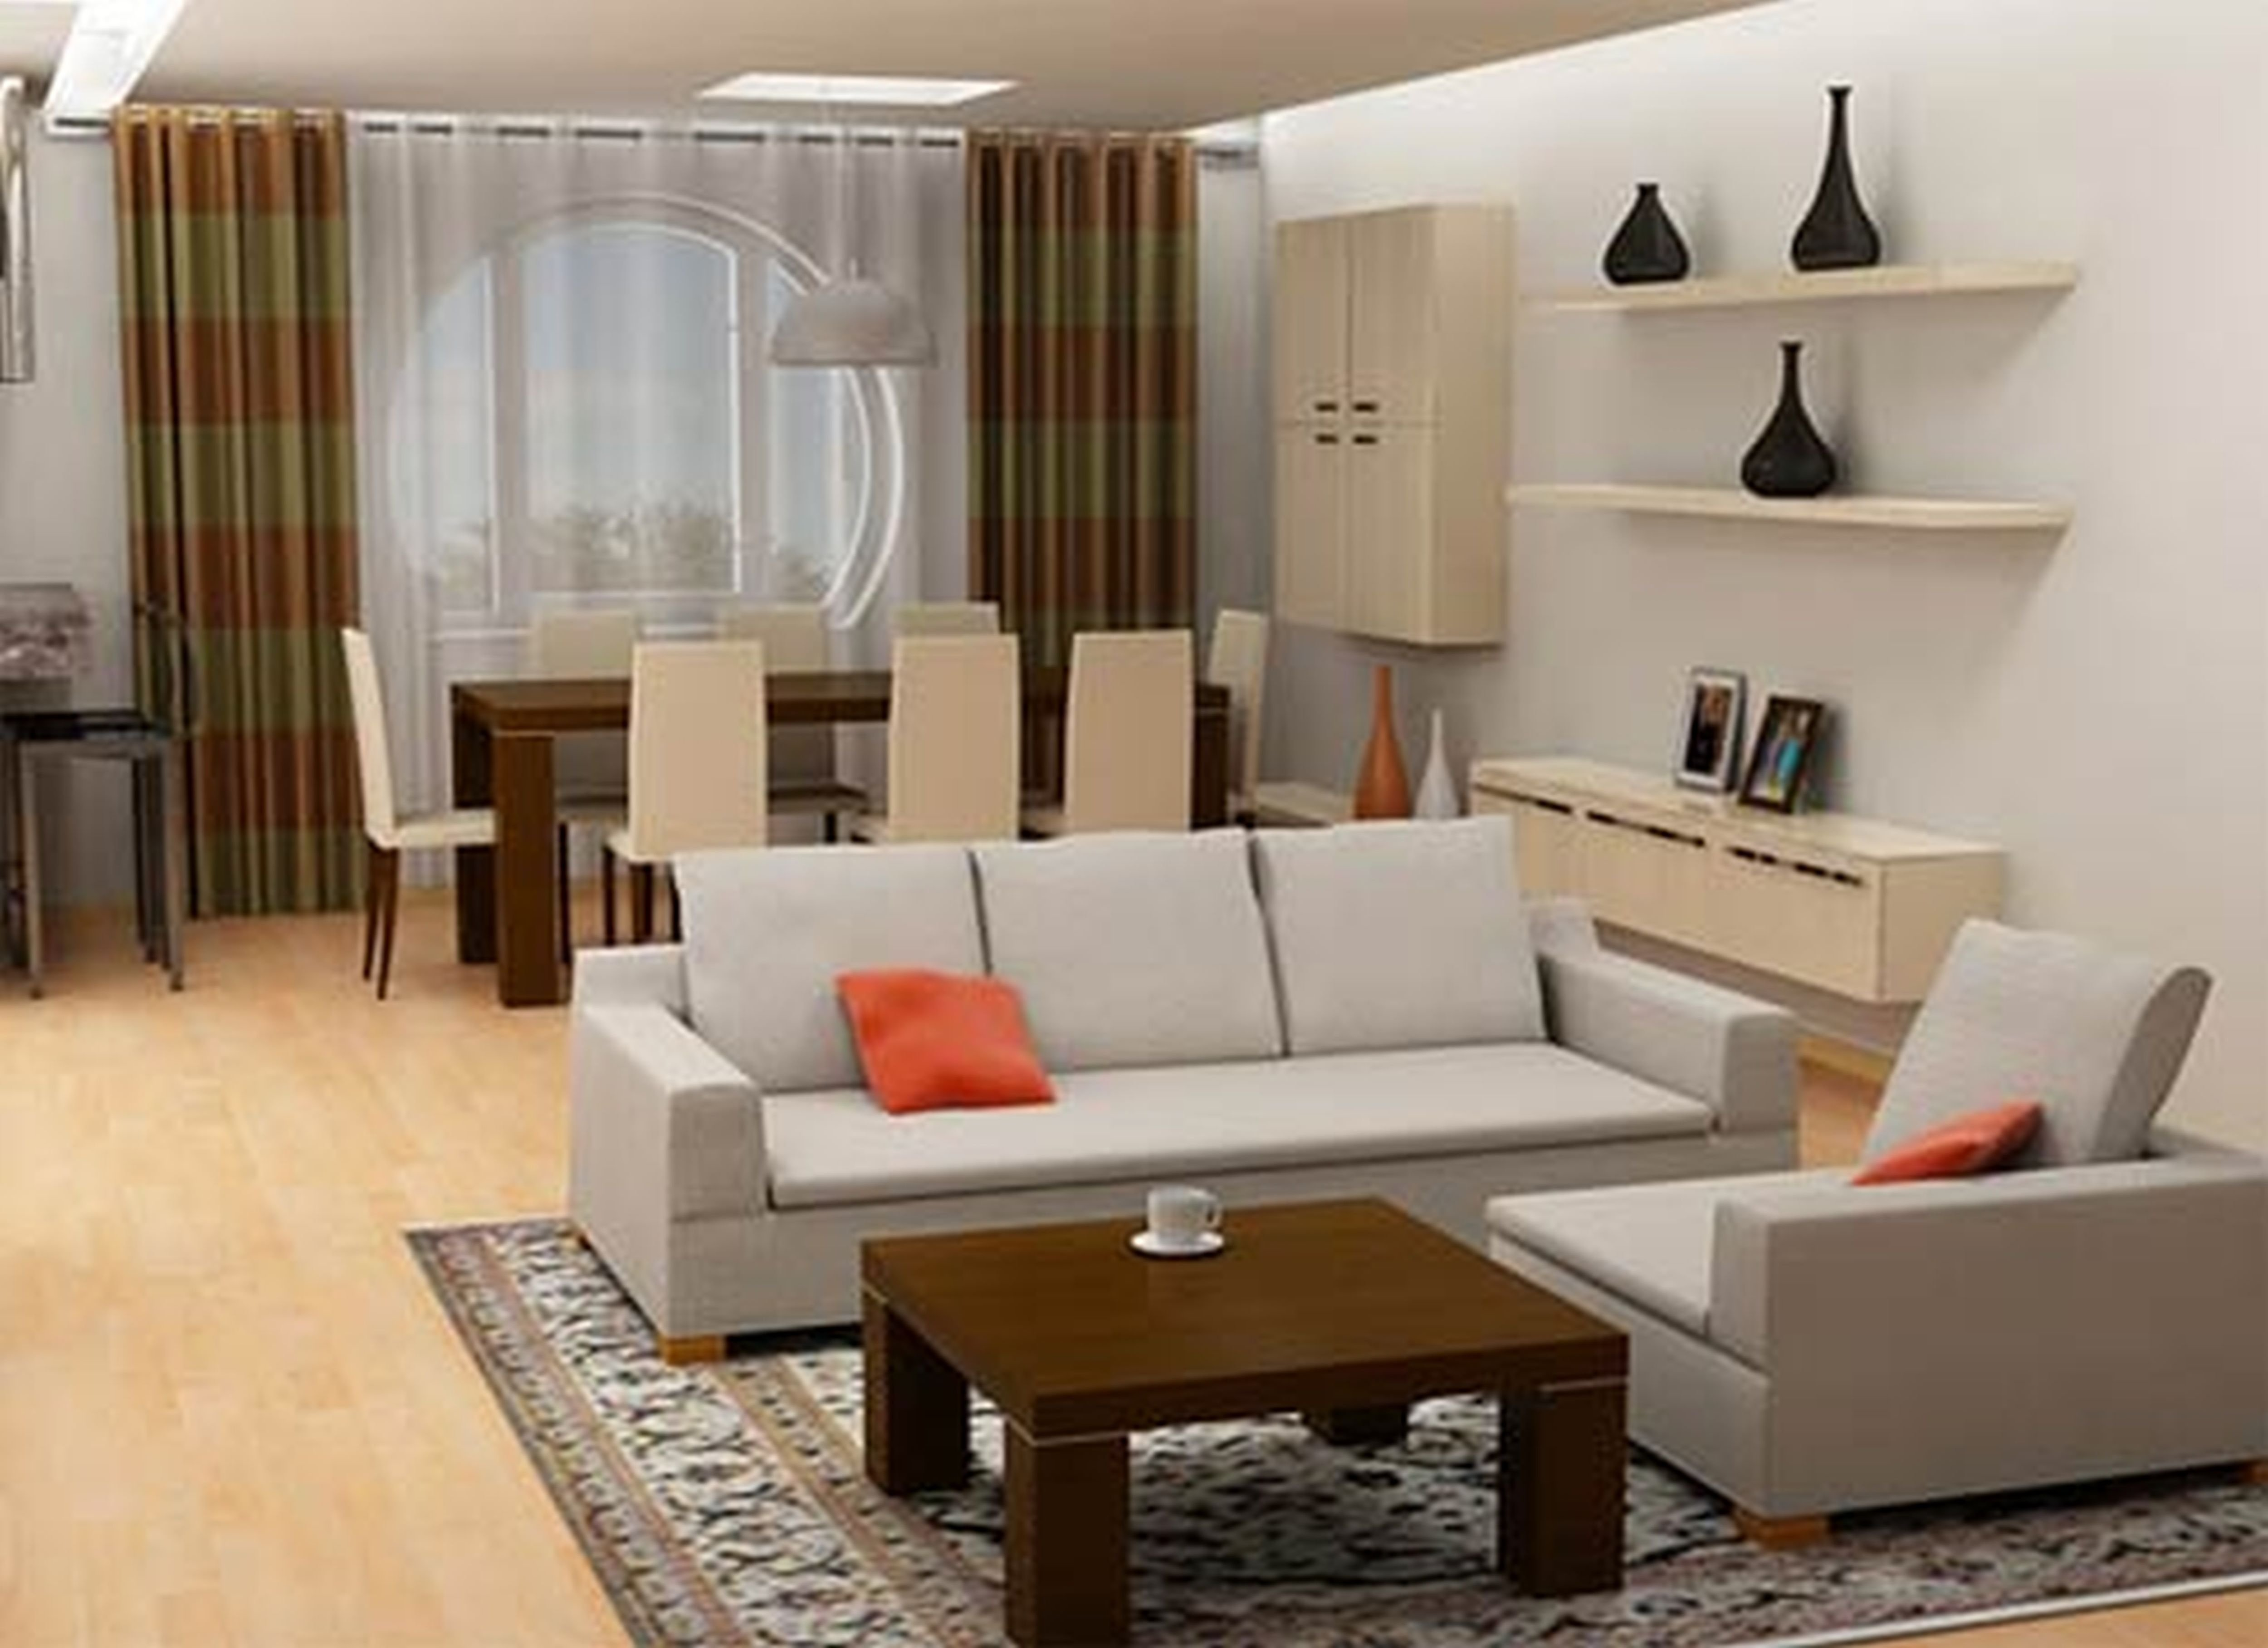 10 Attractive Very Small Living Room Ideas beautiful decorating a very small living room ideas best images home 2020